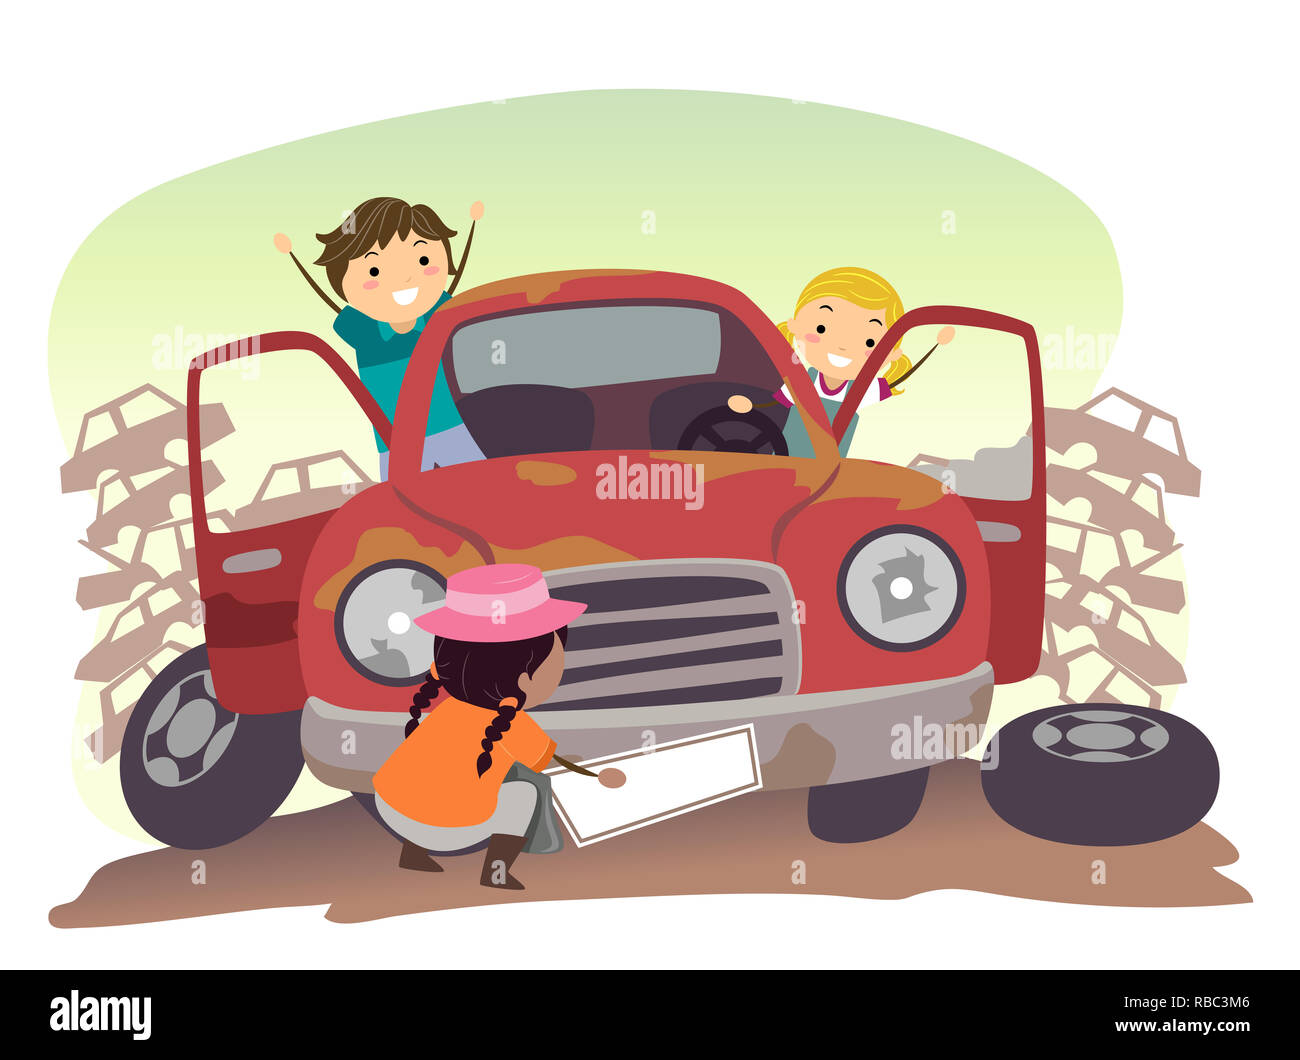 Illustration of Stickman Kids Playing with a Junk Car in the Junkyard - Stock Image